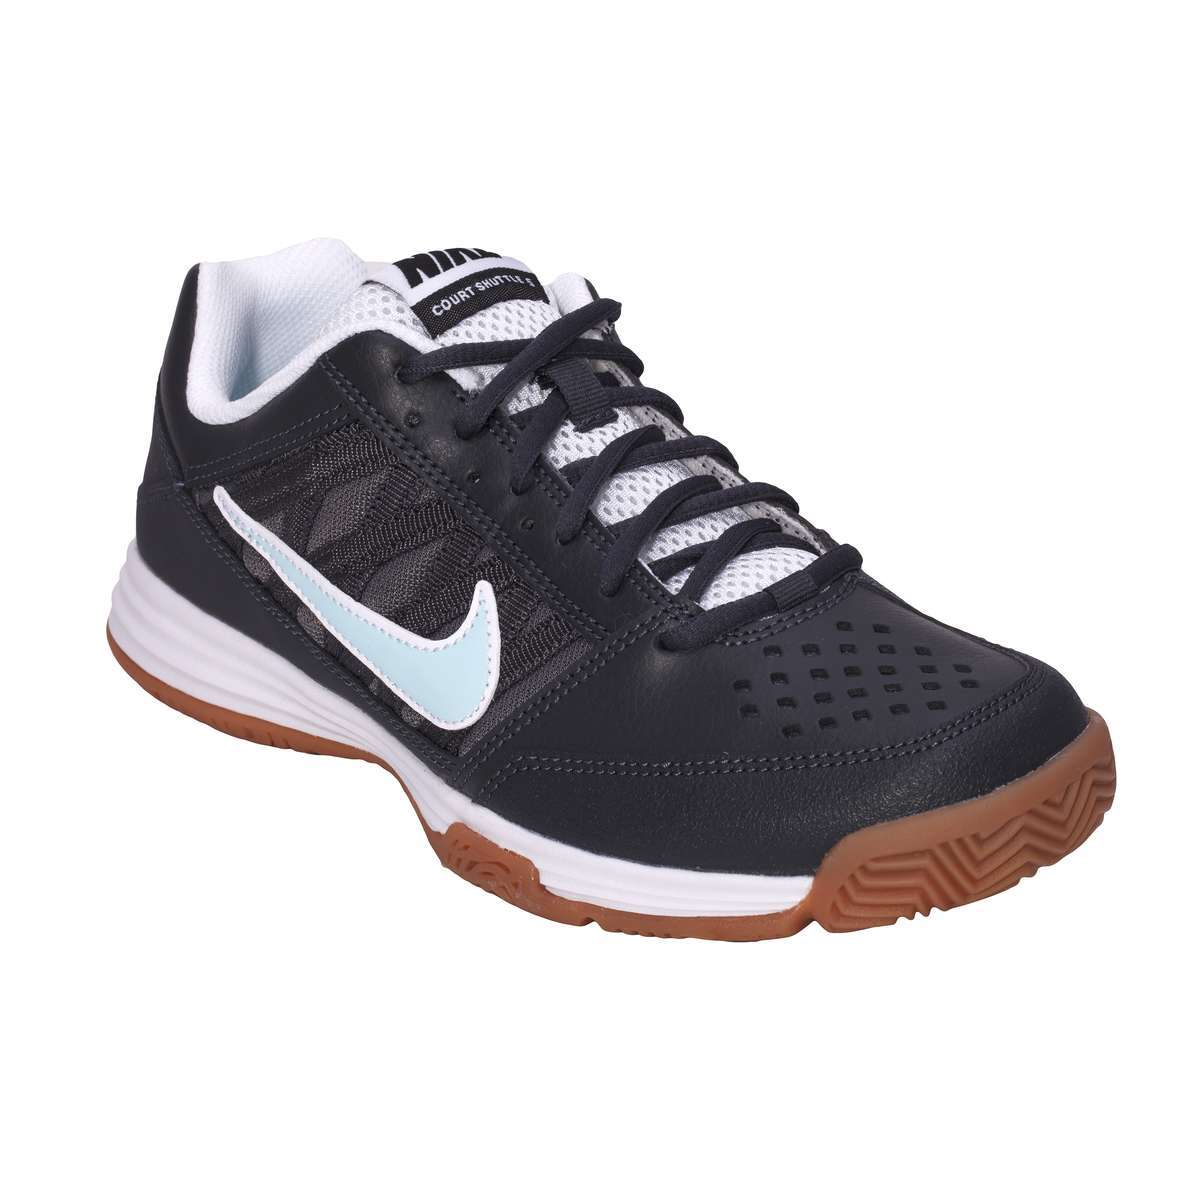 nike-court-shuttle-v-women-black